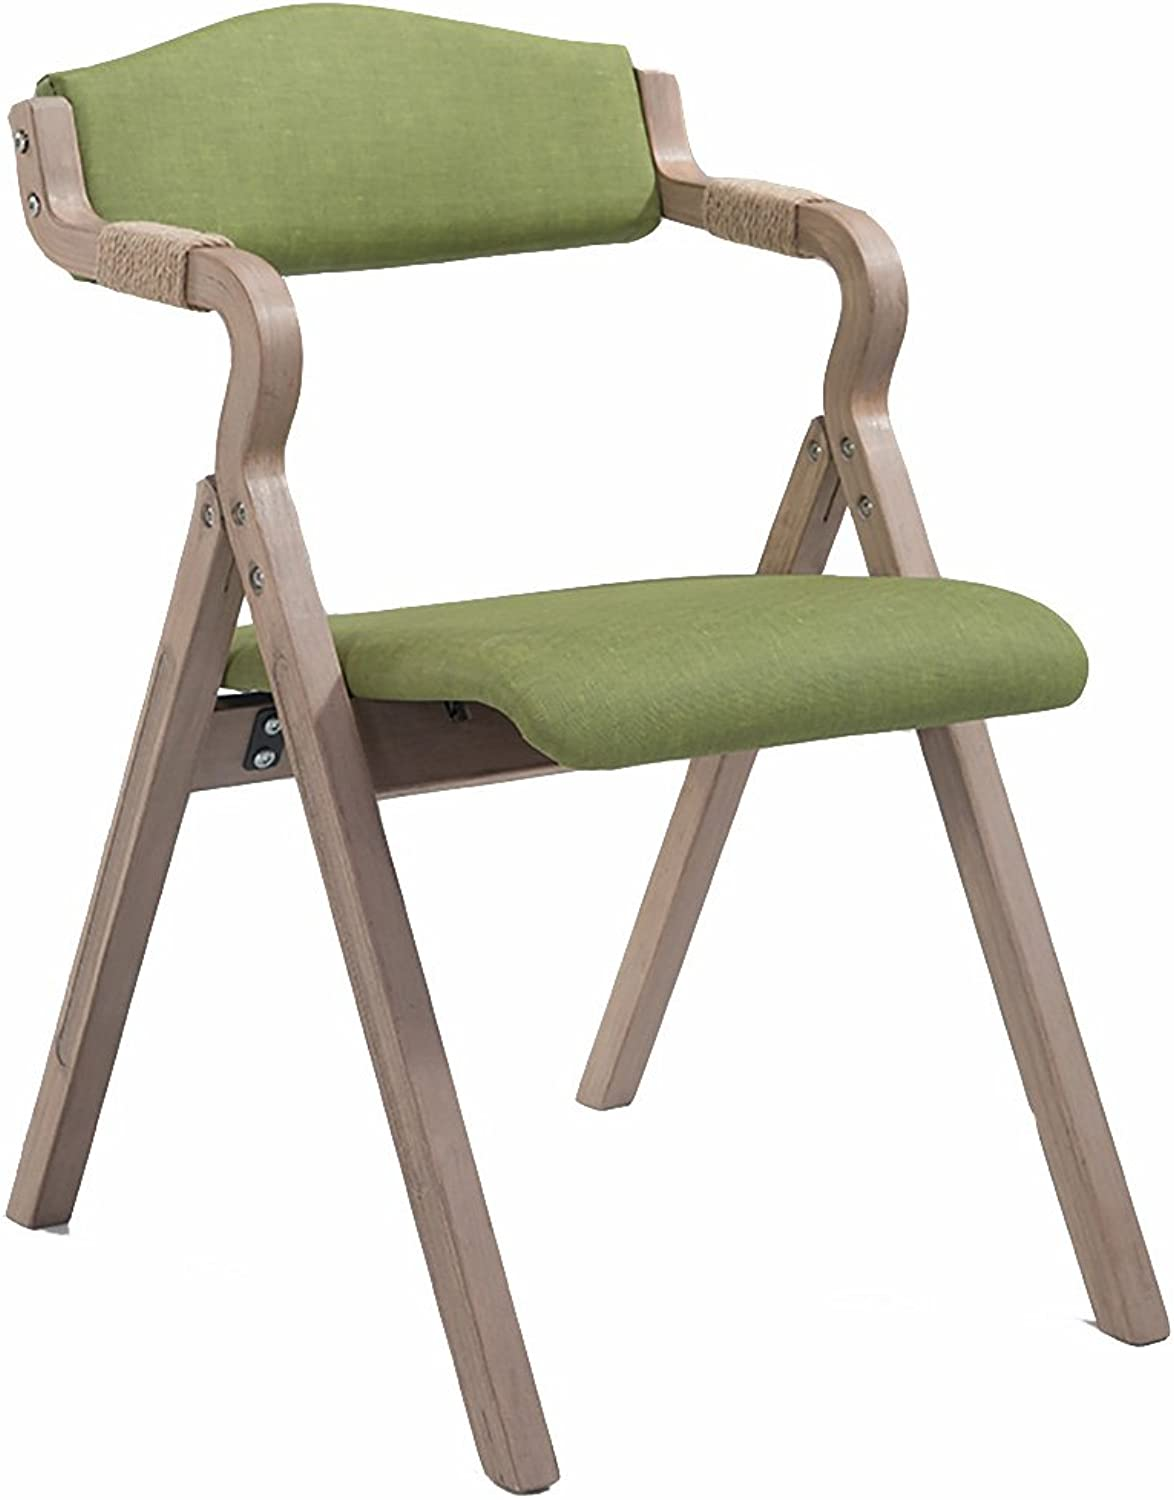 KXBYMX Modern minimalist retro folding dining chair fabric home chair study leisure chair  home stool (color   A)